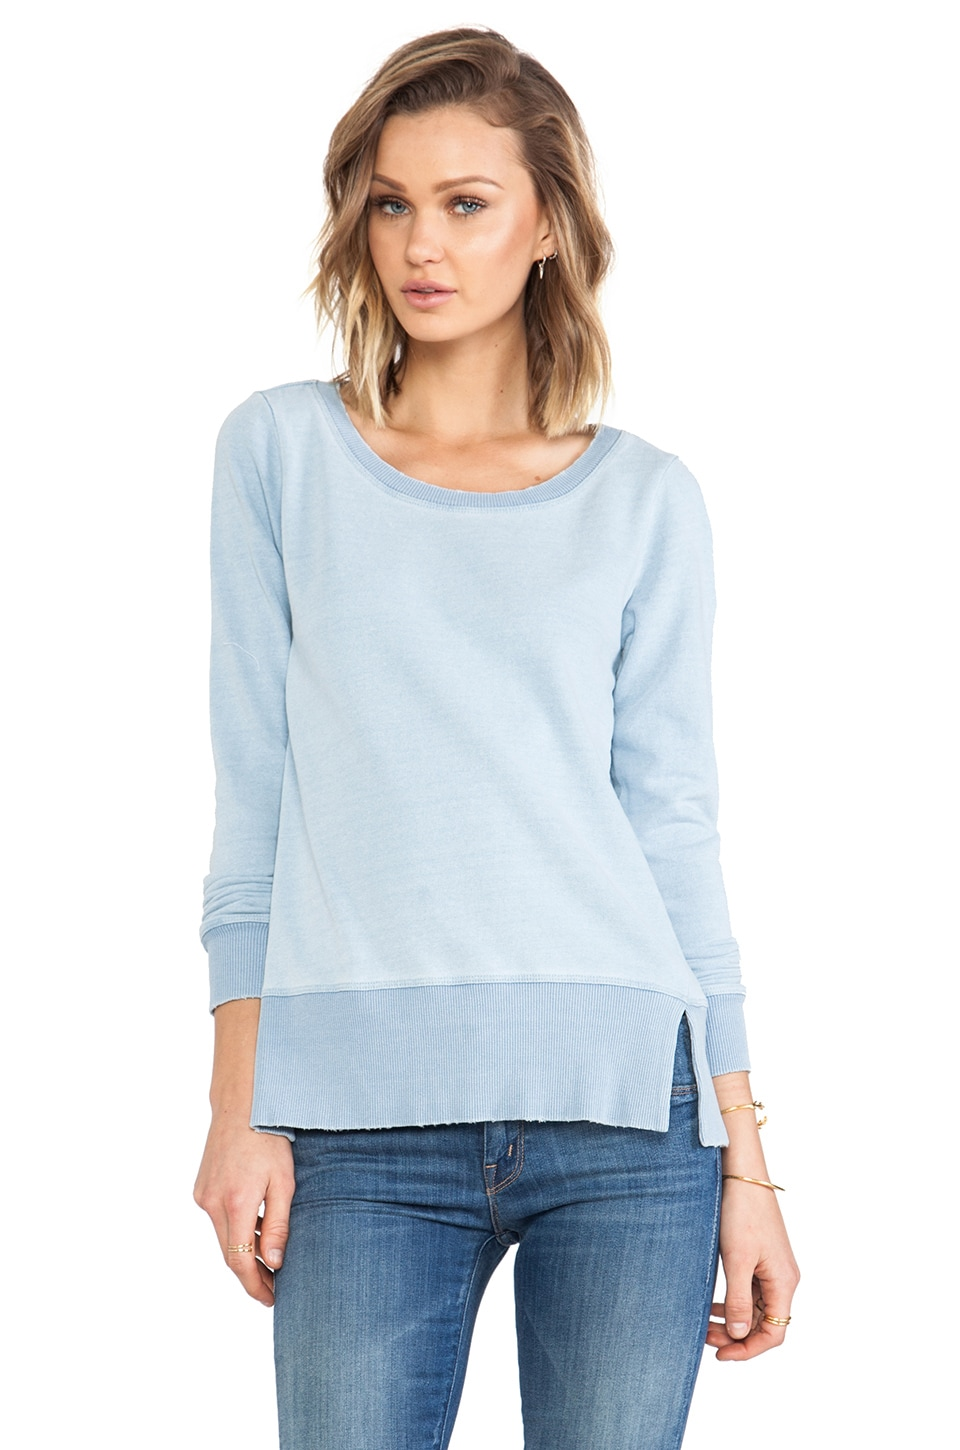 Splendid Indigo Blue French Terry Long Sleeve in Light Indigo